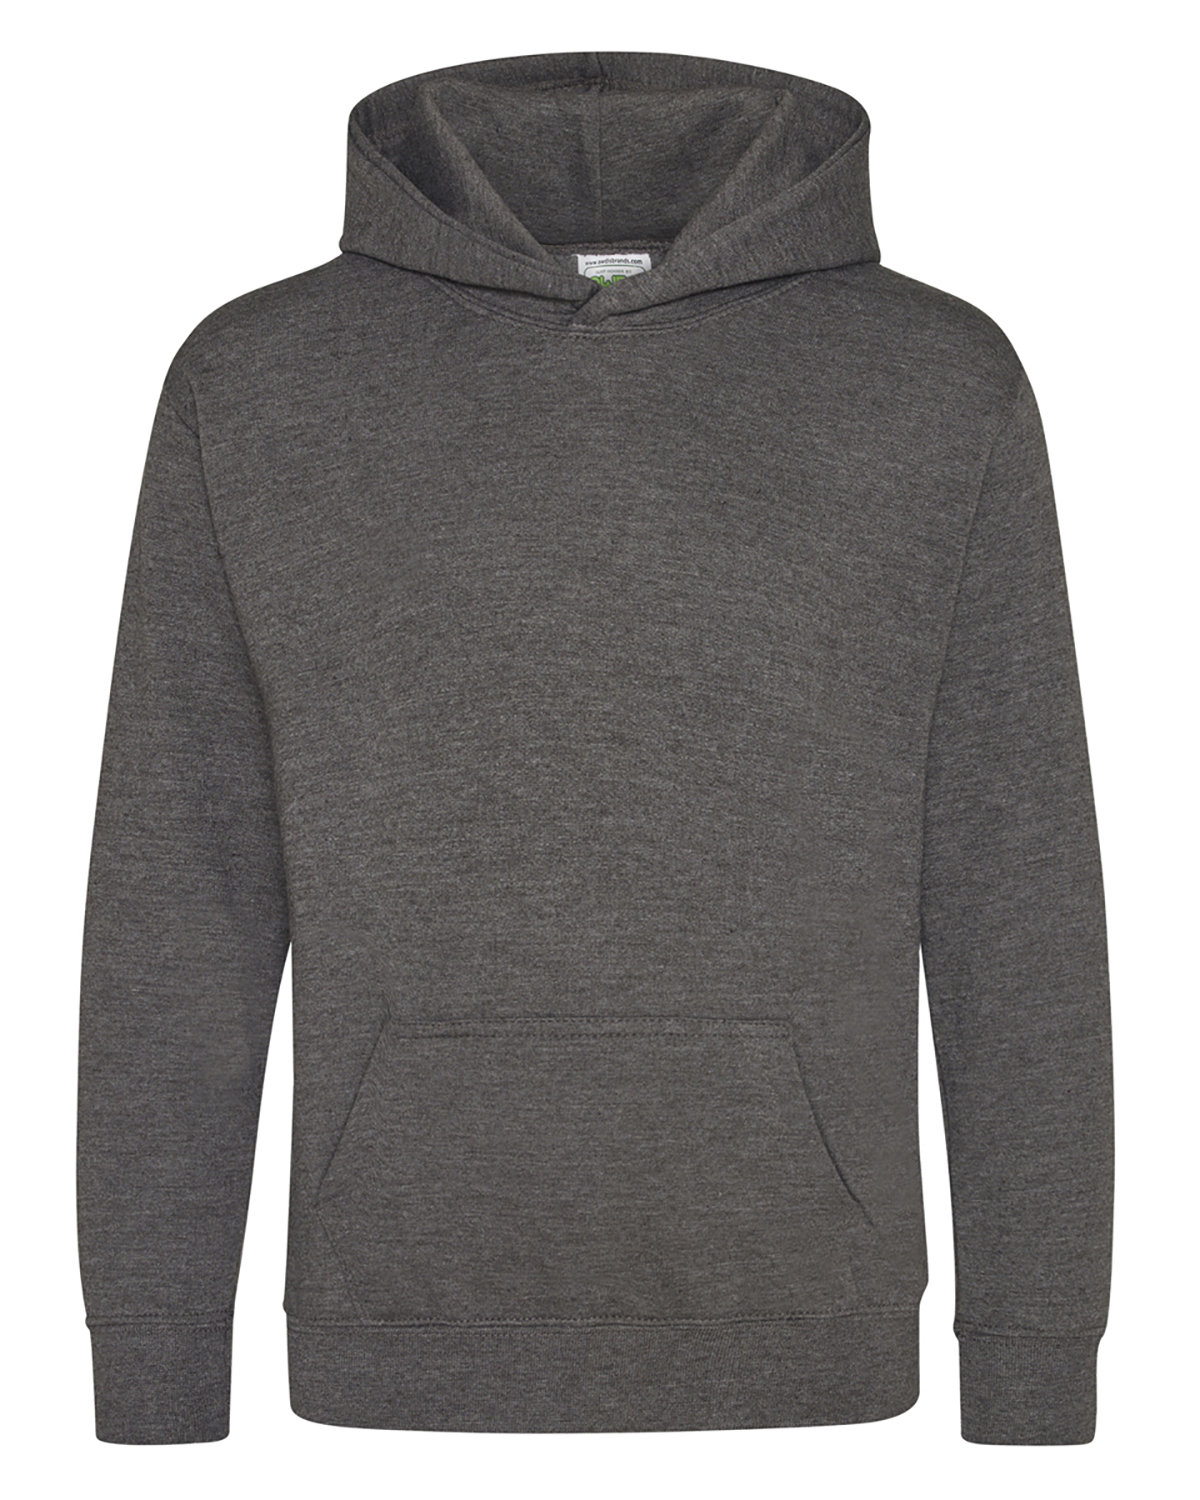 Just Hoods By AWDis Youth 80/20 Midweight College Hooded Sweatshirt CHARCOAL